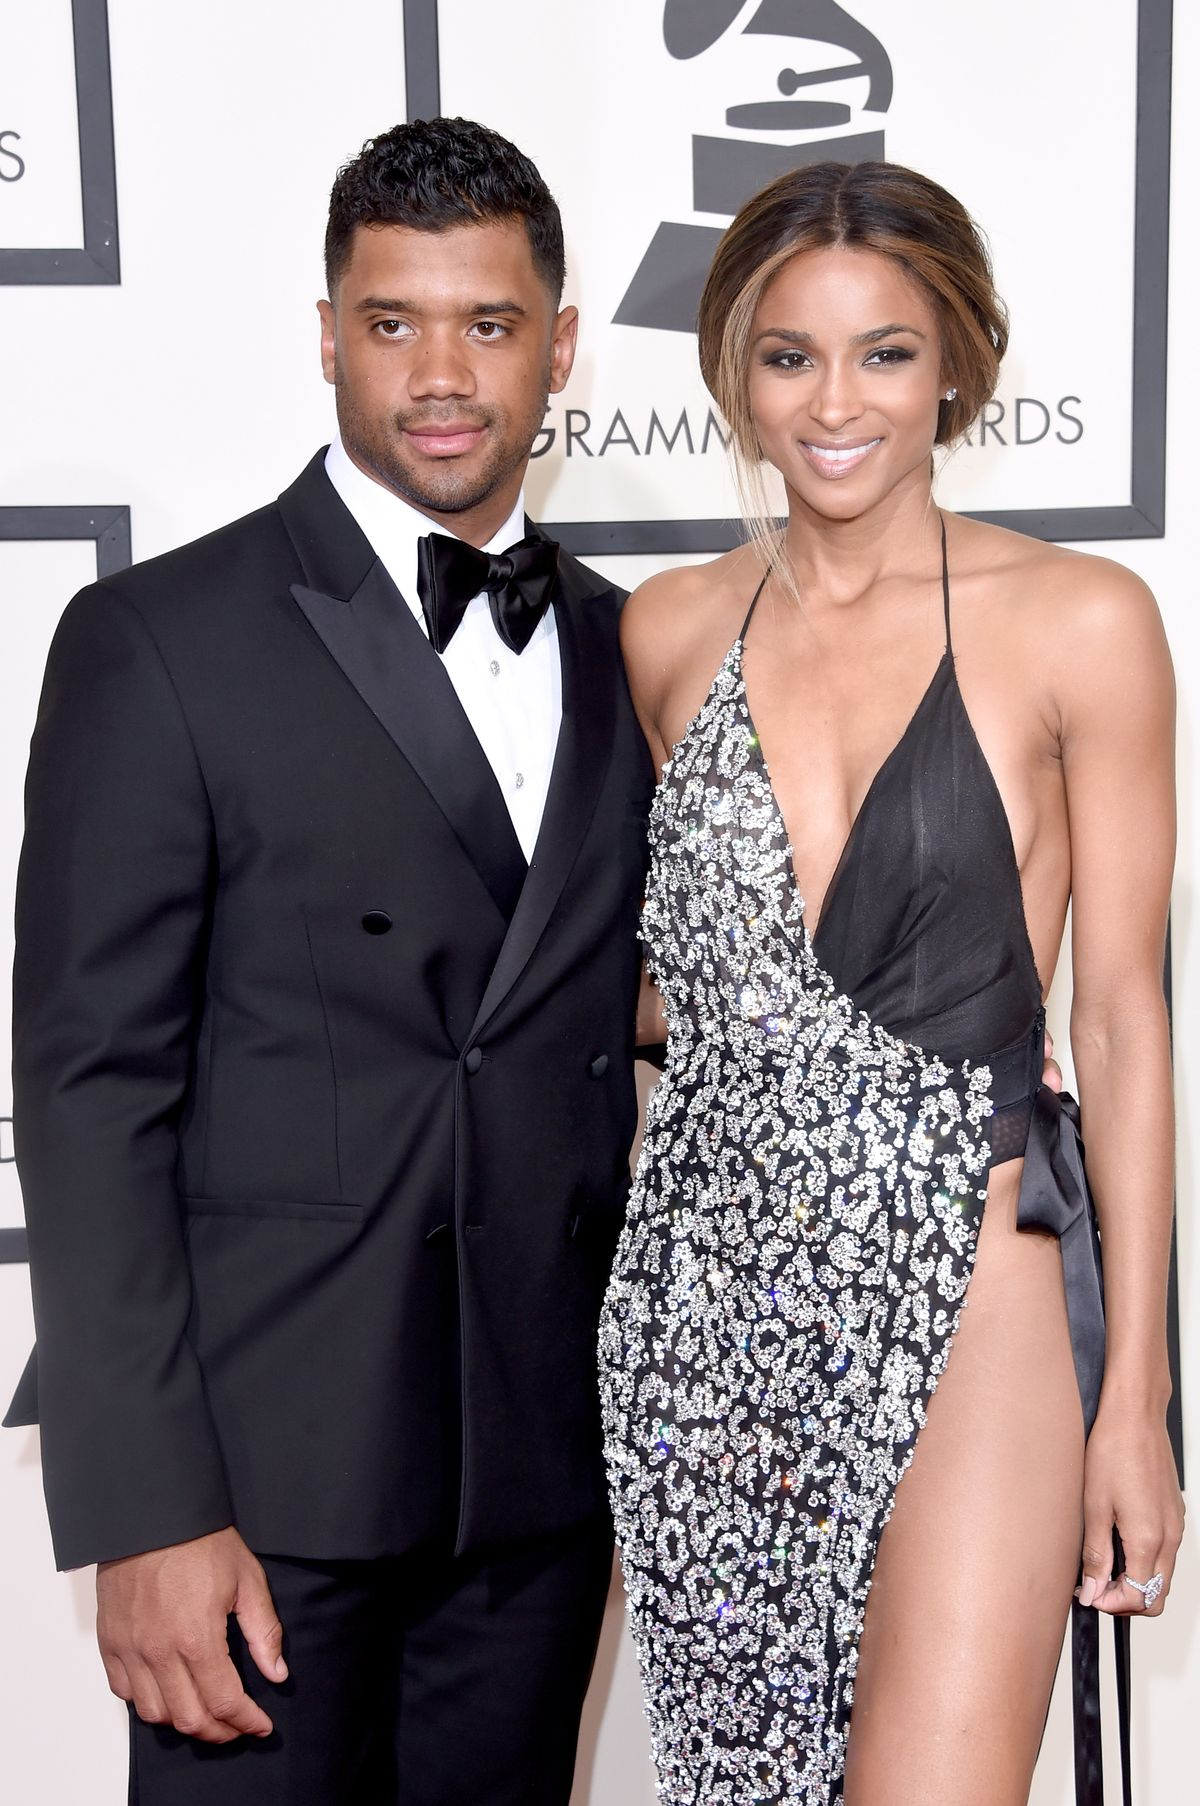 LOS ANGELES, CA - FEBRUARY 15: NFL player Russell Wilson (L) and recording artist Ciara attend The 58th GRAMMY Awards at Staples Center on February 15, 2016 in Los Angeles, California. (Photo by Jason Merritt/Getty Images for NARAS)